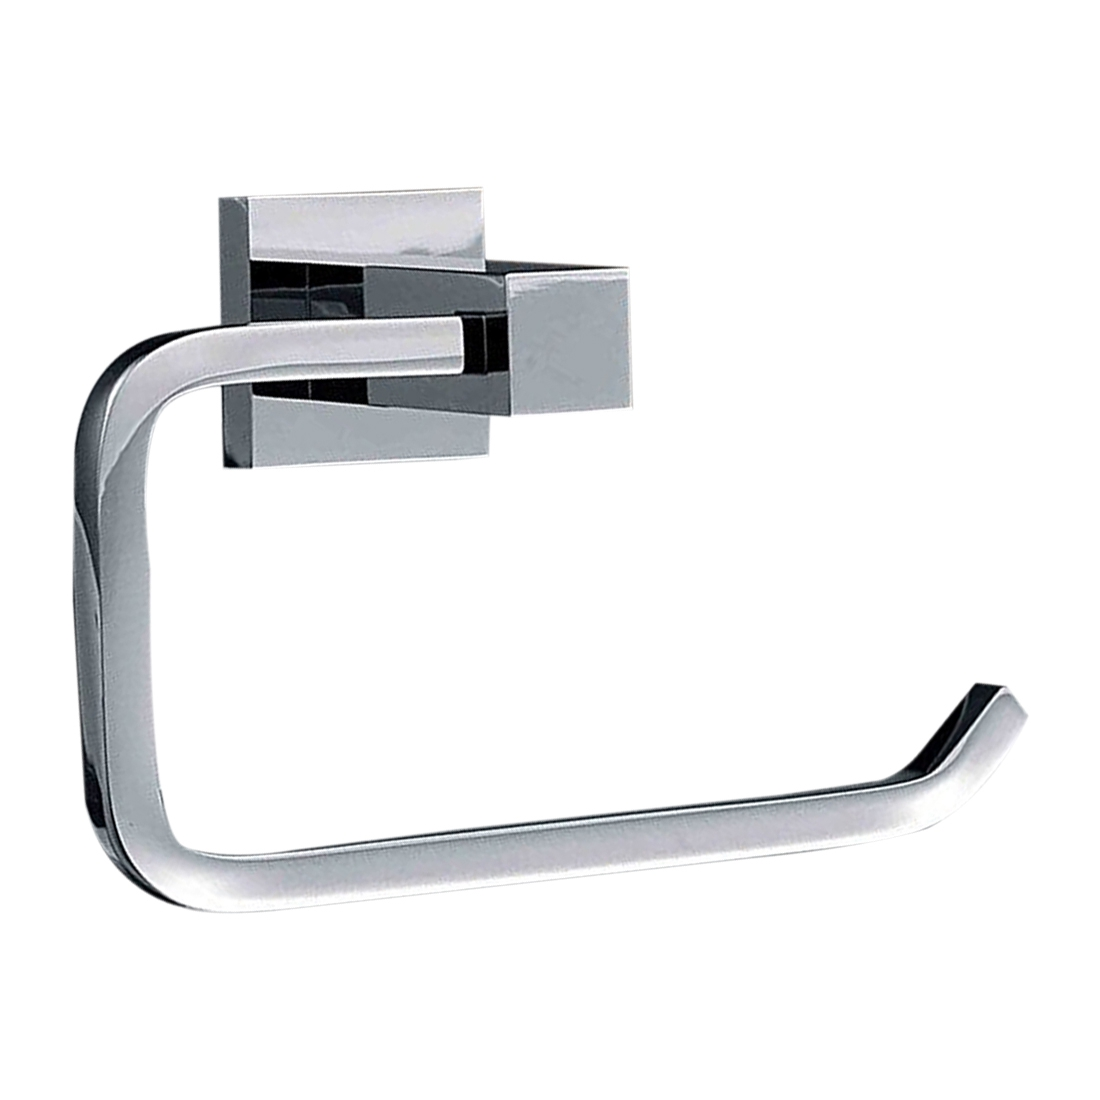 Brass wall holder chrome plated toilet paper holder stainless steel ...